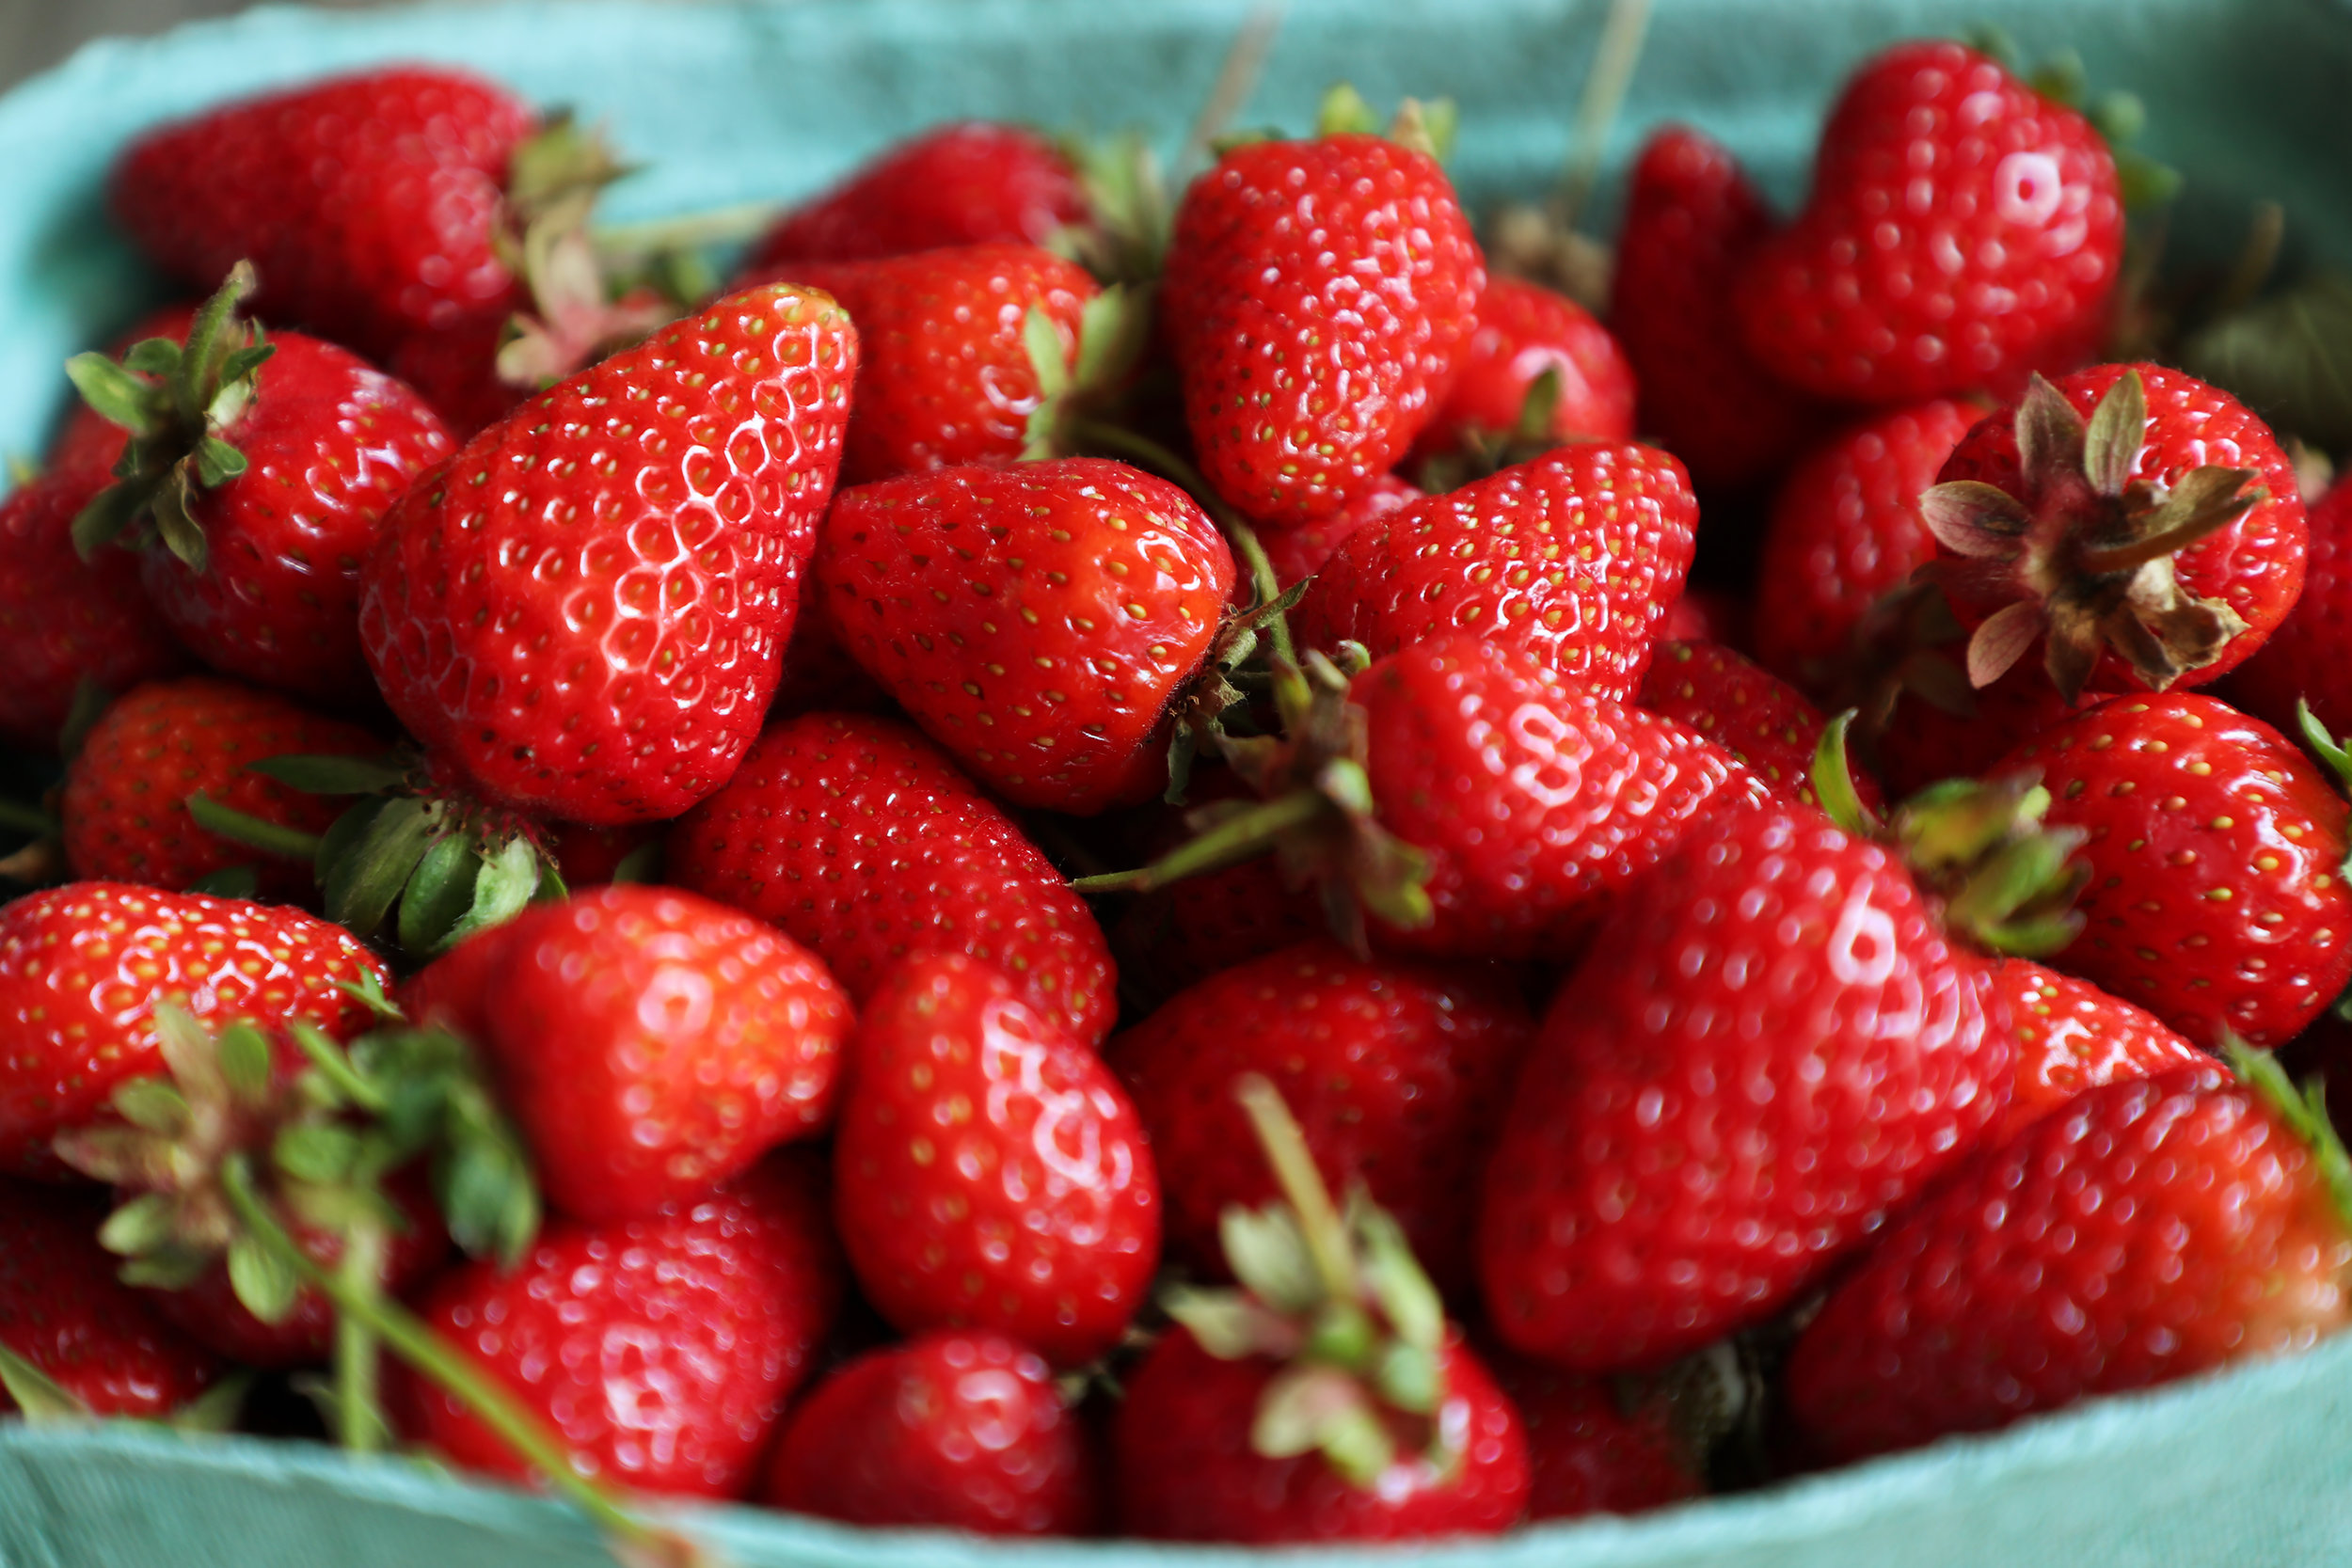 PGW-STRAWBERRIES.jpg